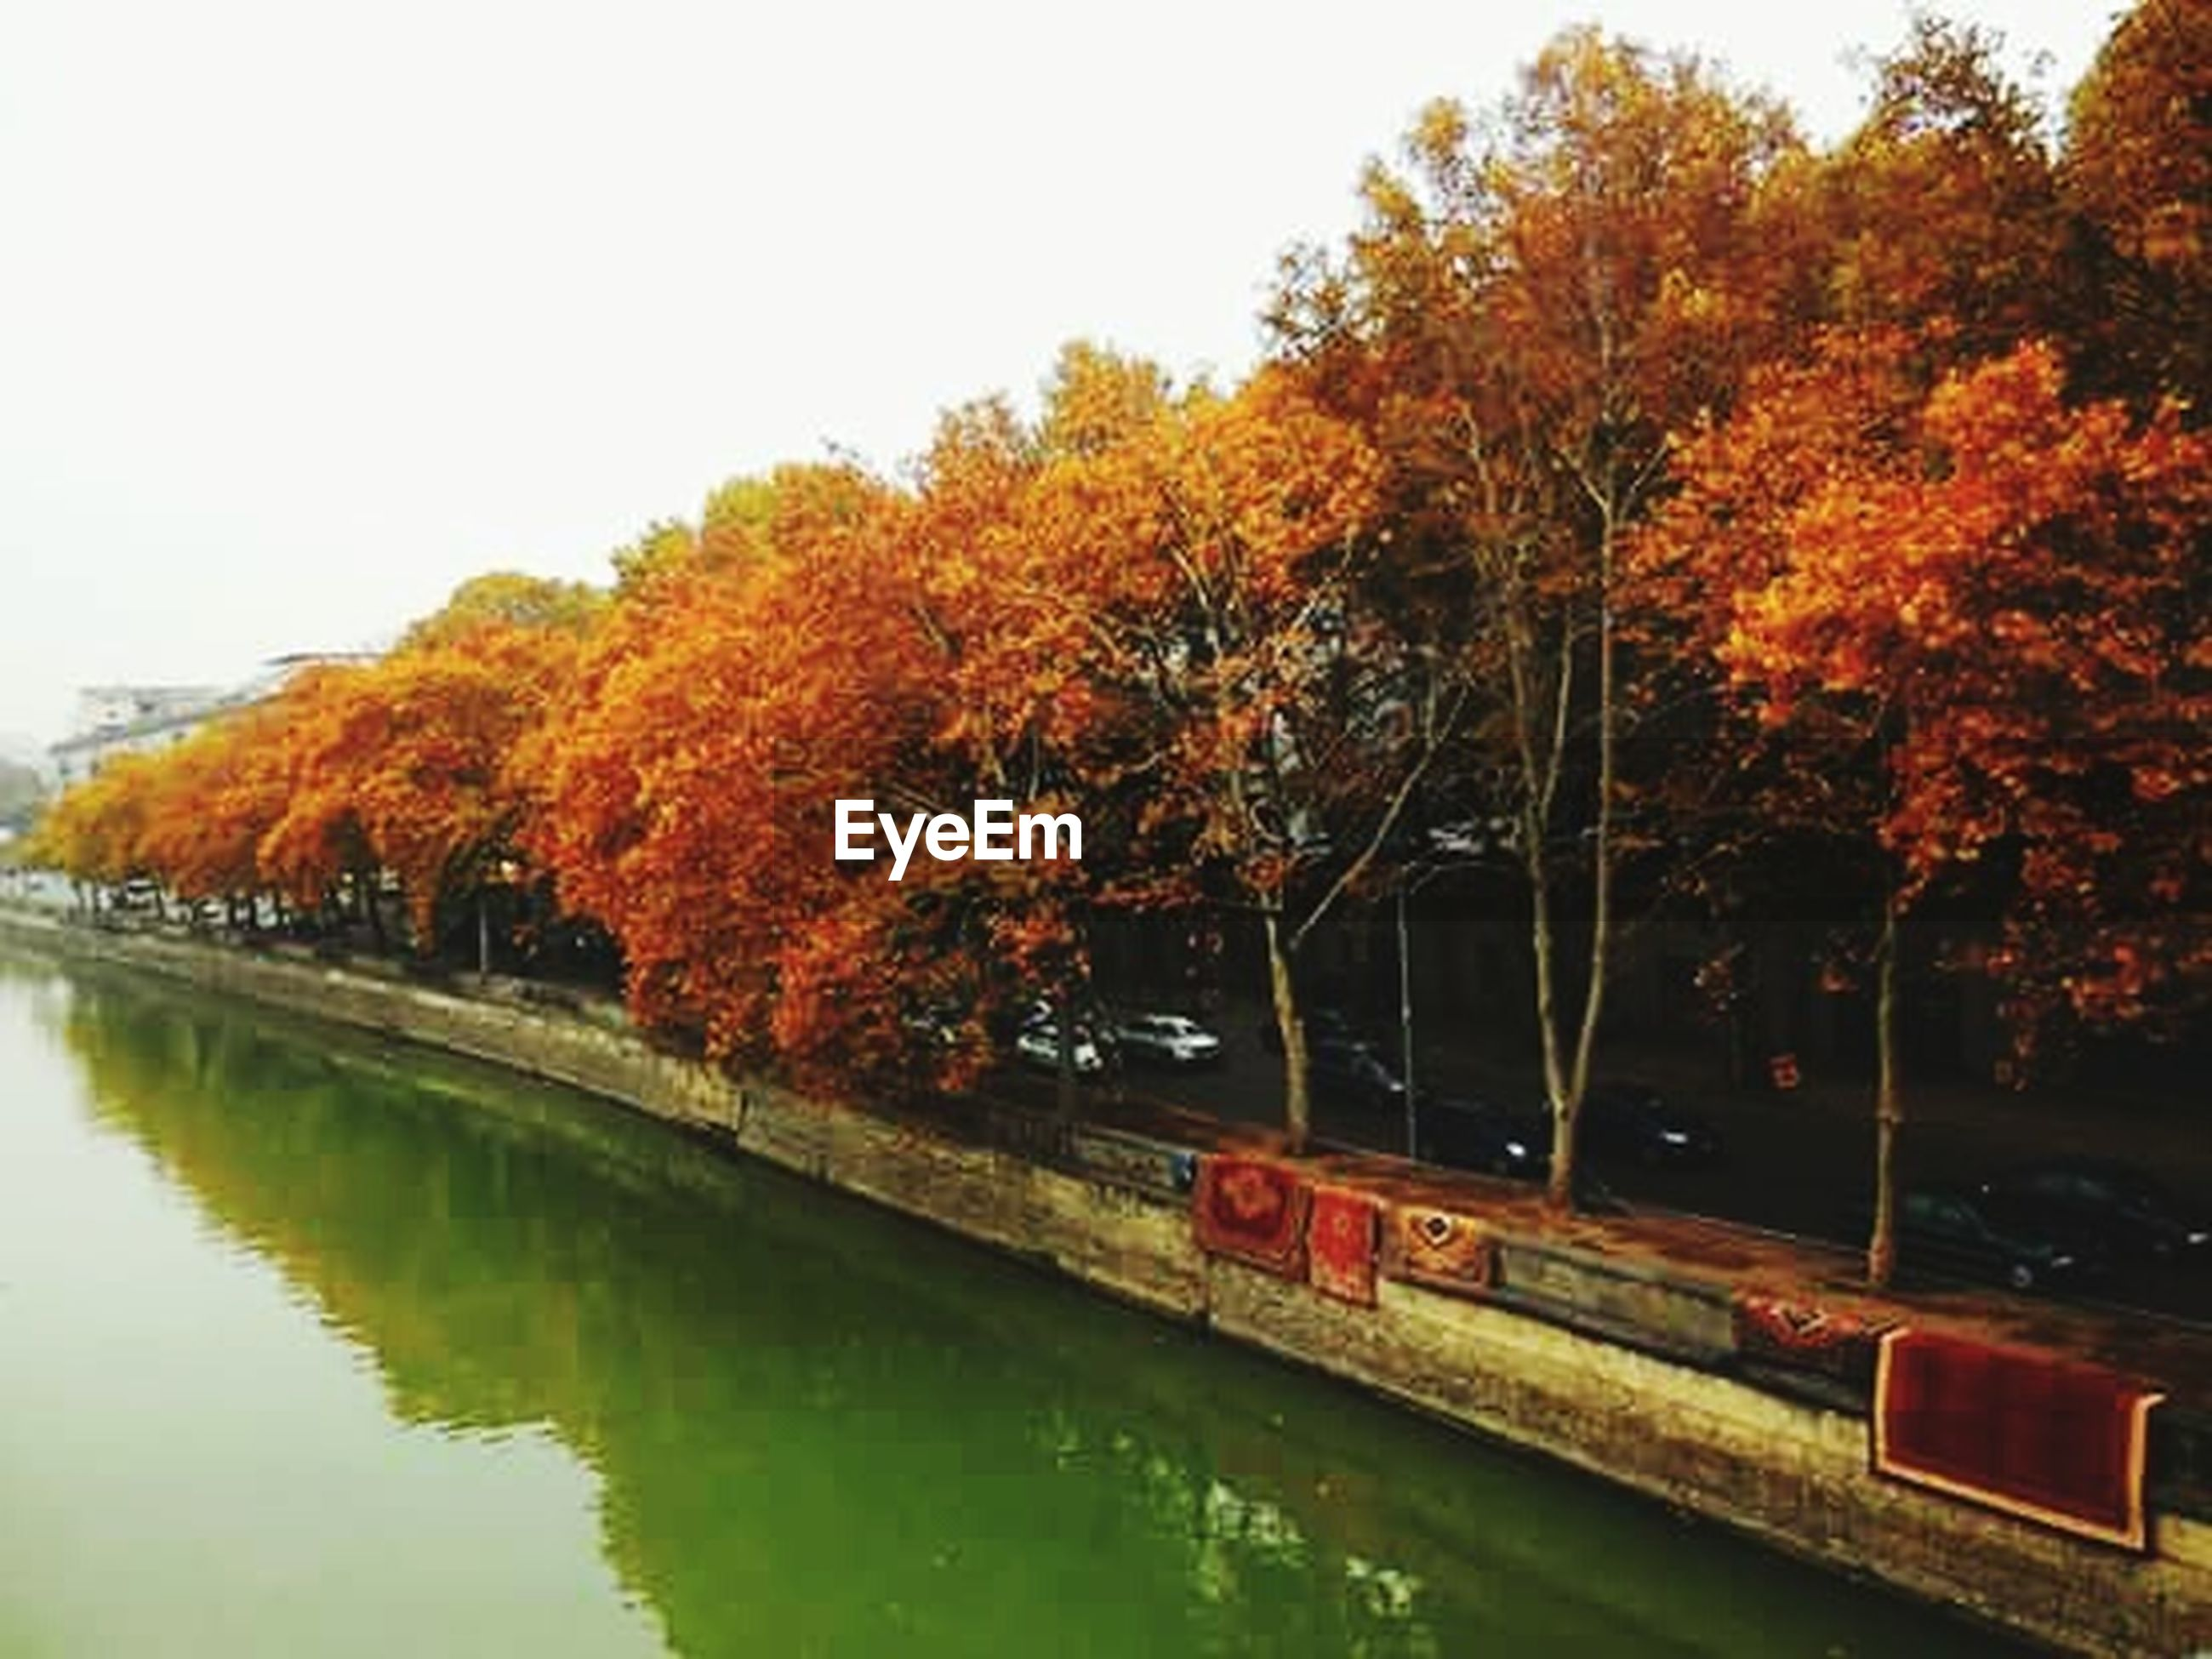 tree, autumn, change, orange color, leaf, reflection, transportation, nature, beauty in nature, scenics, no people, outdoors, water, mode of transport, river, day, sky, city